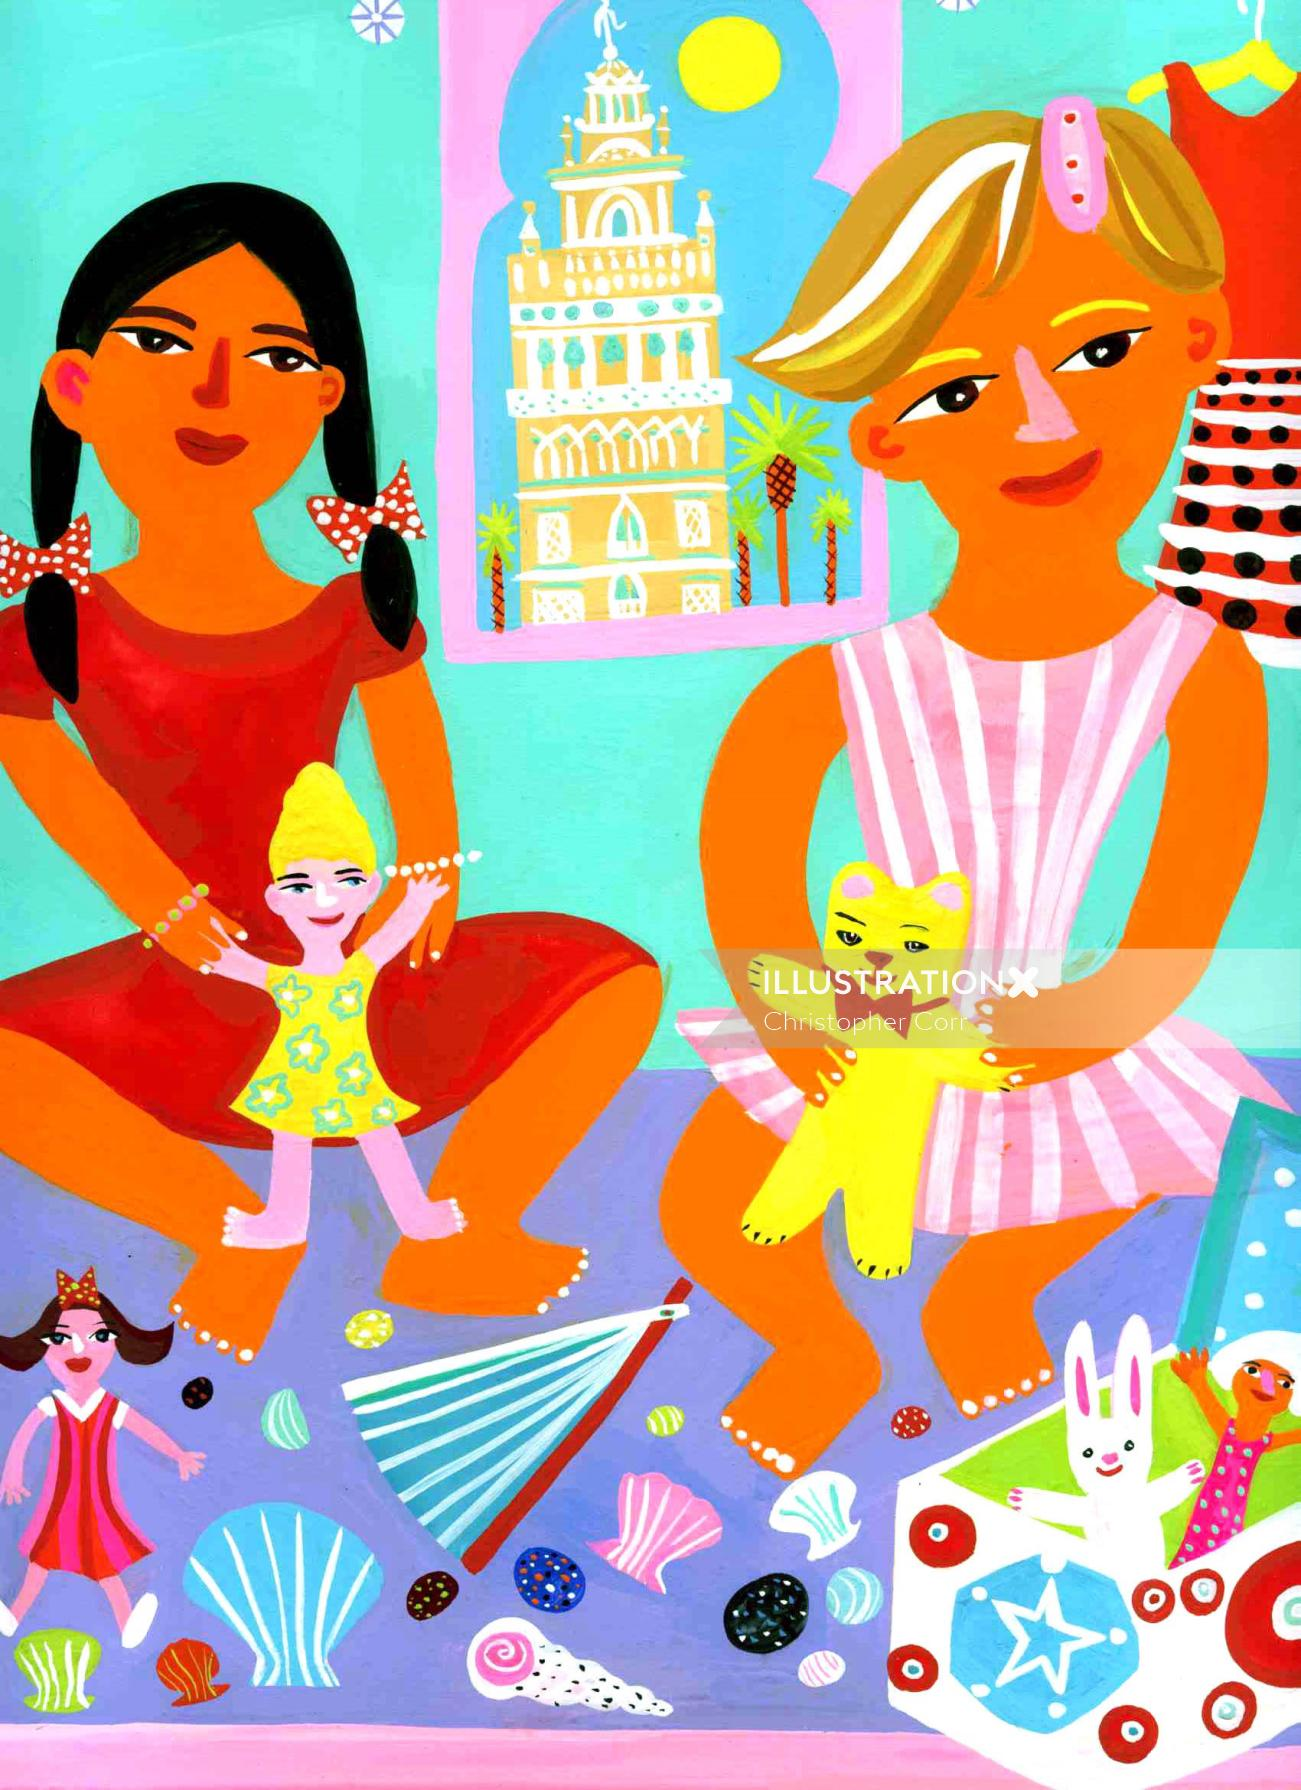 Illustration of colorful kid characters playing with dolls